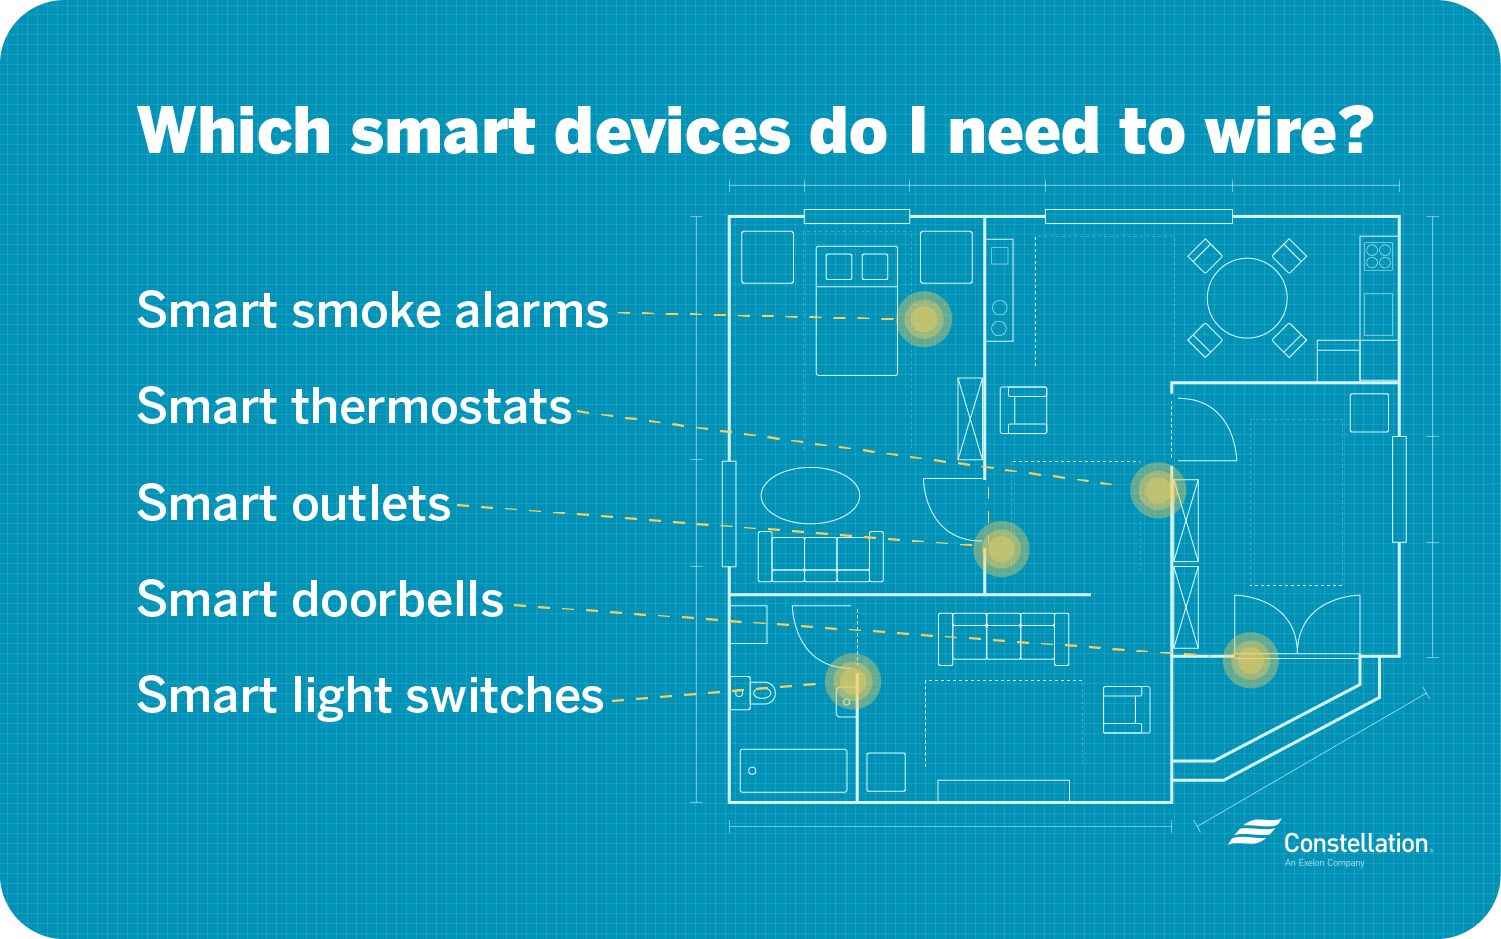 Which smart devices do I need to wire for my smart home